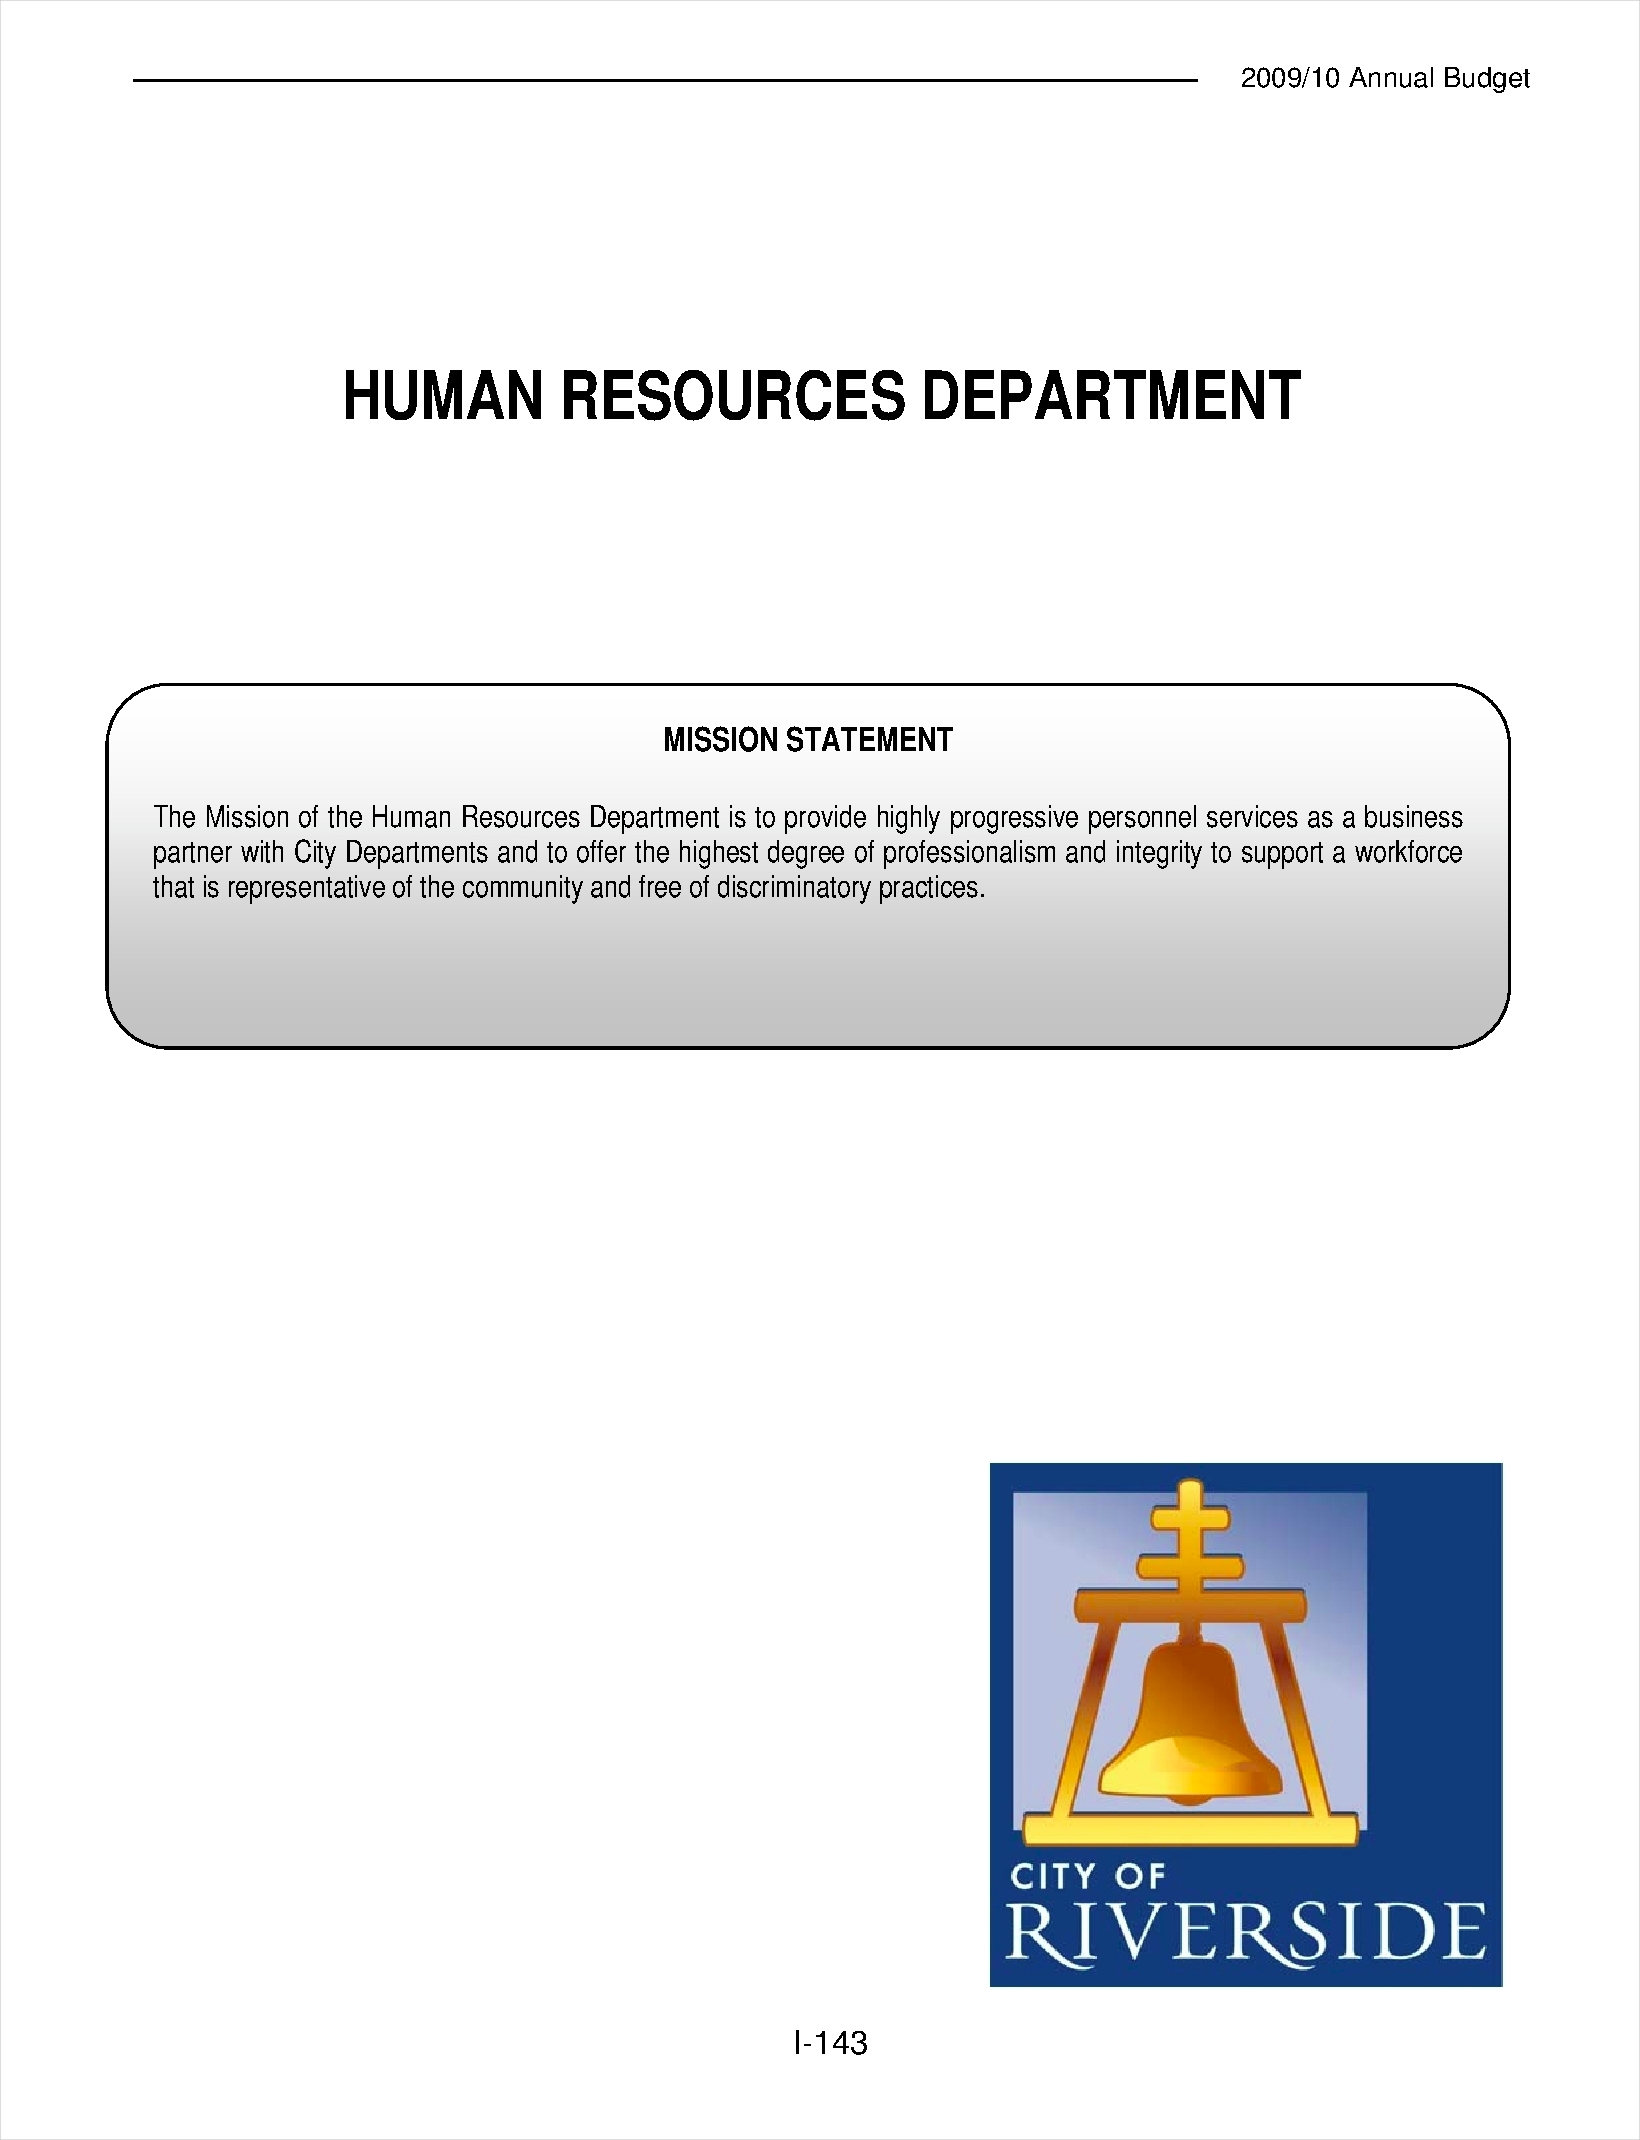 Human Resource Annual Budget  Human Resource Examples